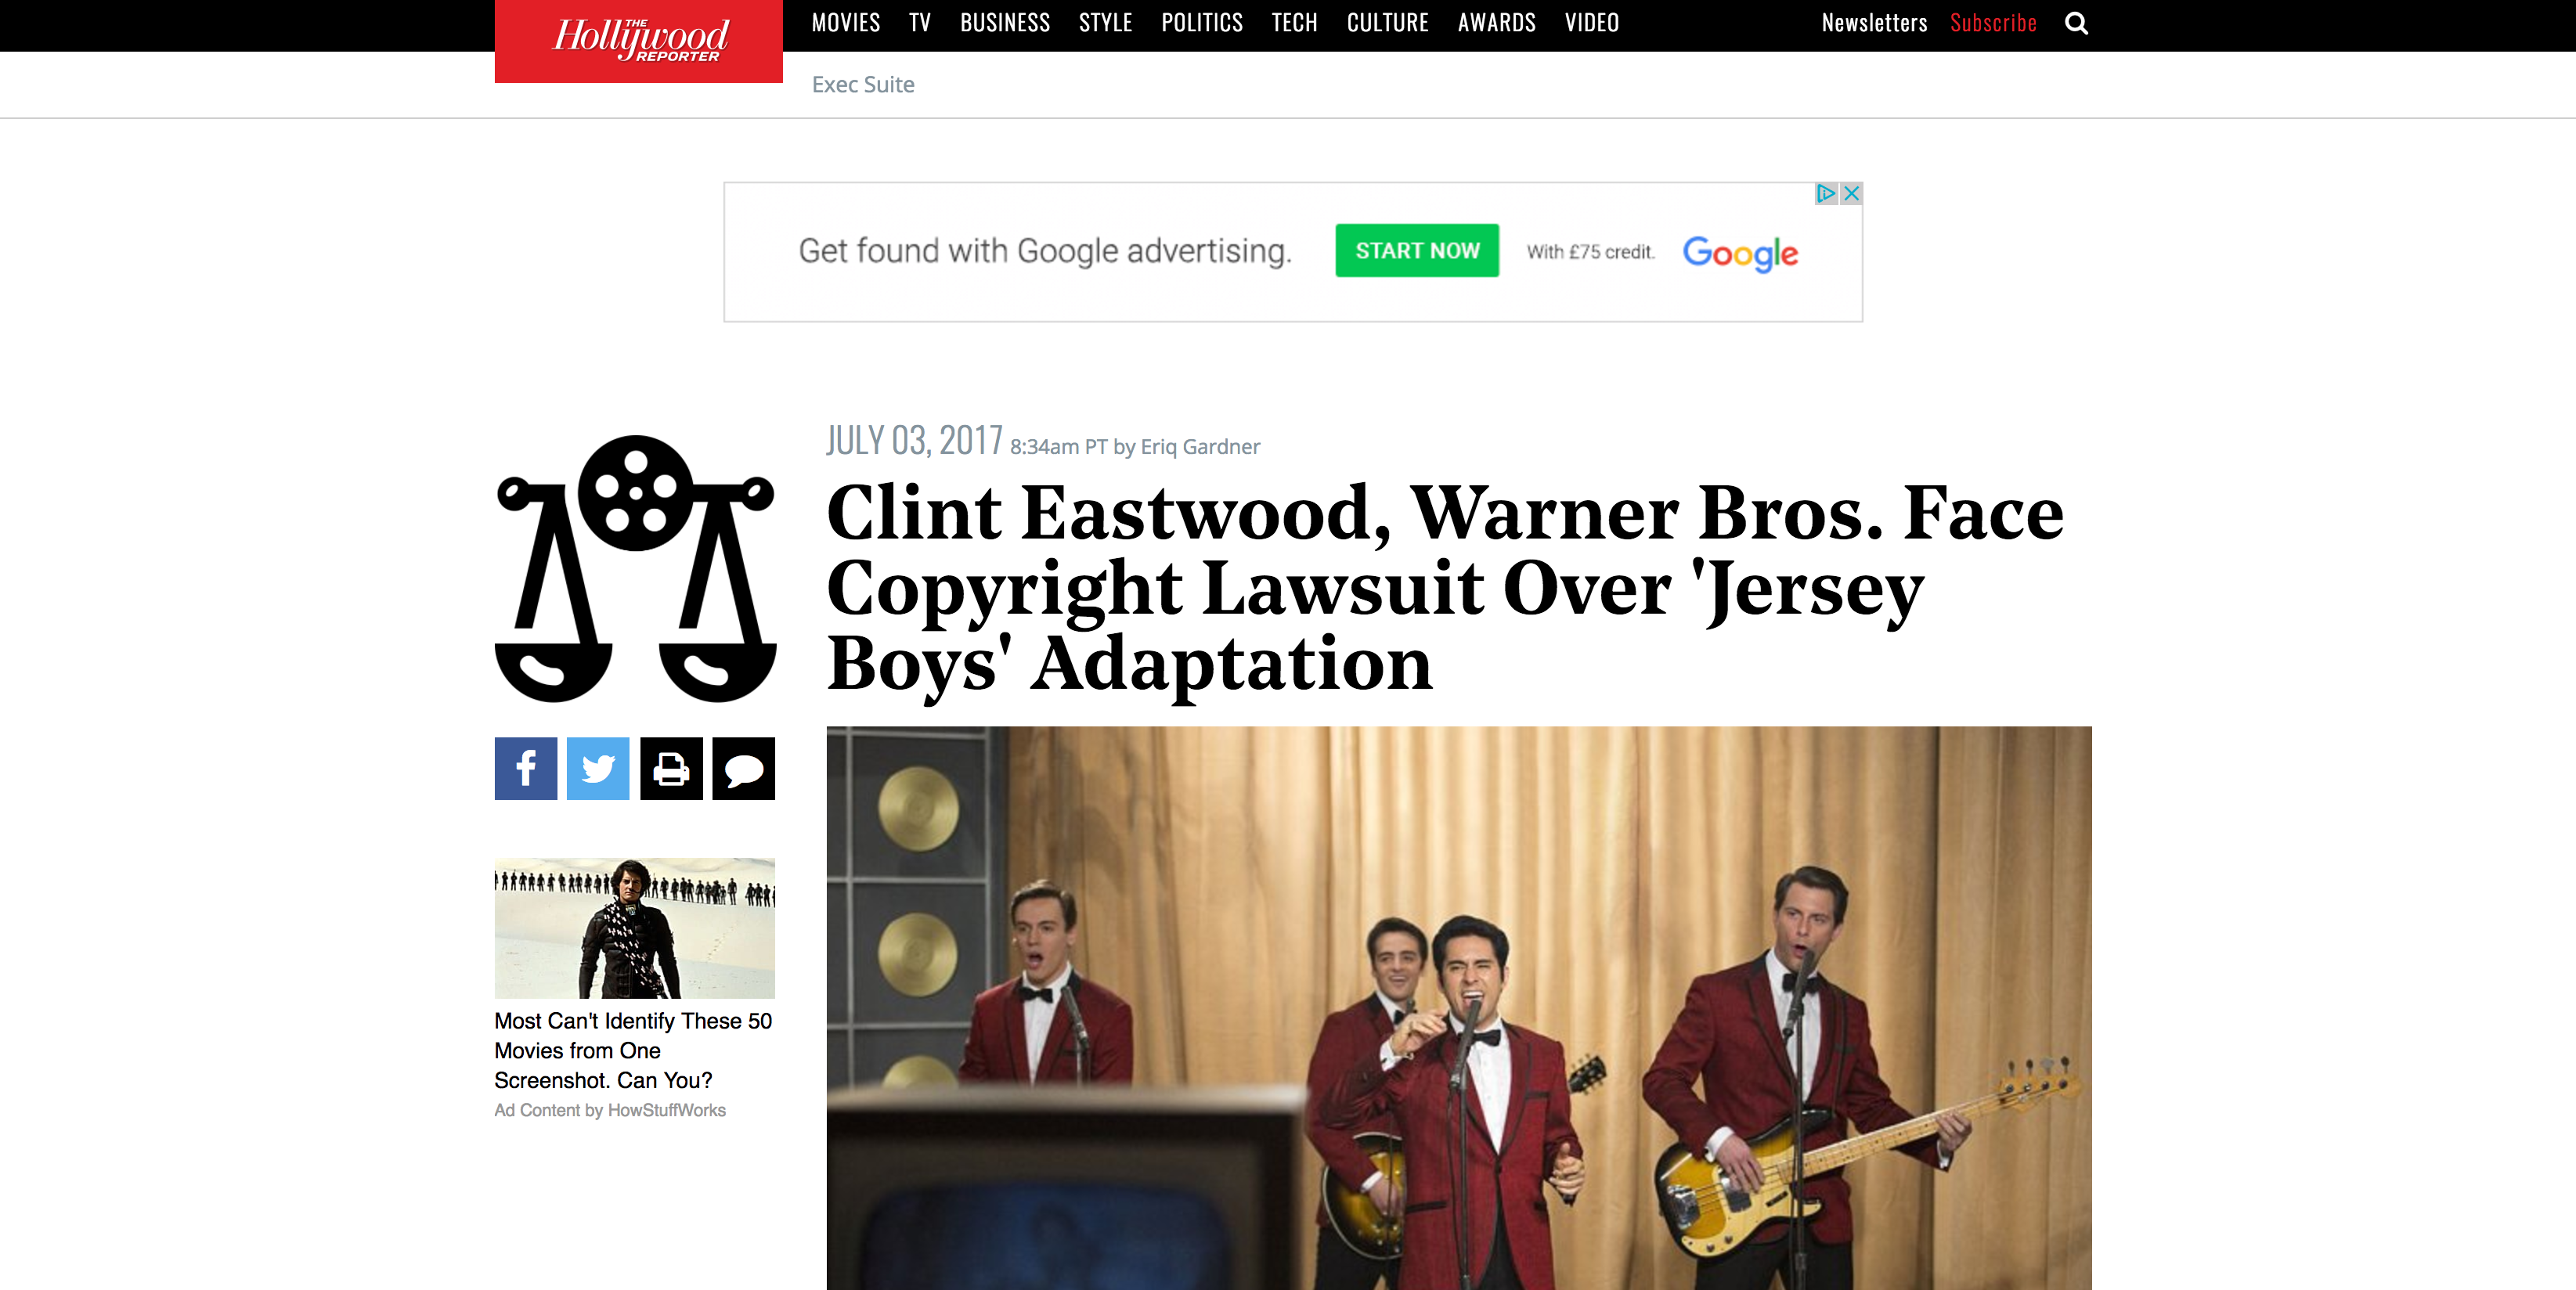 Fairness Rocks News Clint Eastwood, Warner Bros. Face Copyright Lawsuit Over 'Jersey Boys' Adaptation